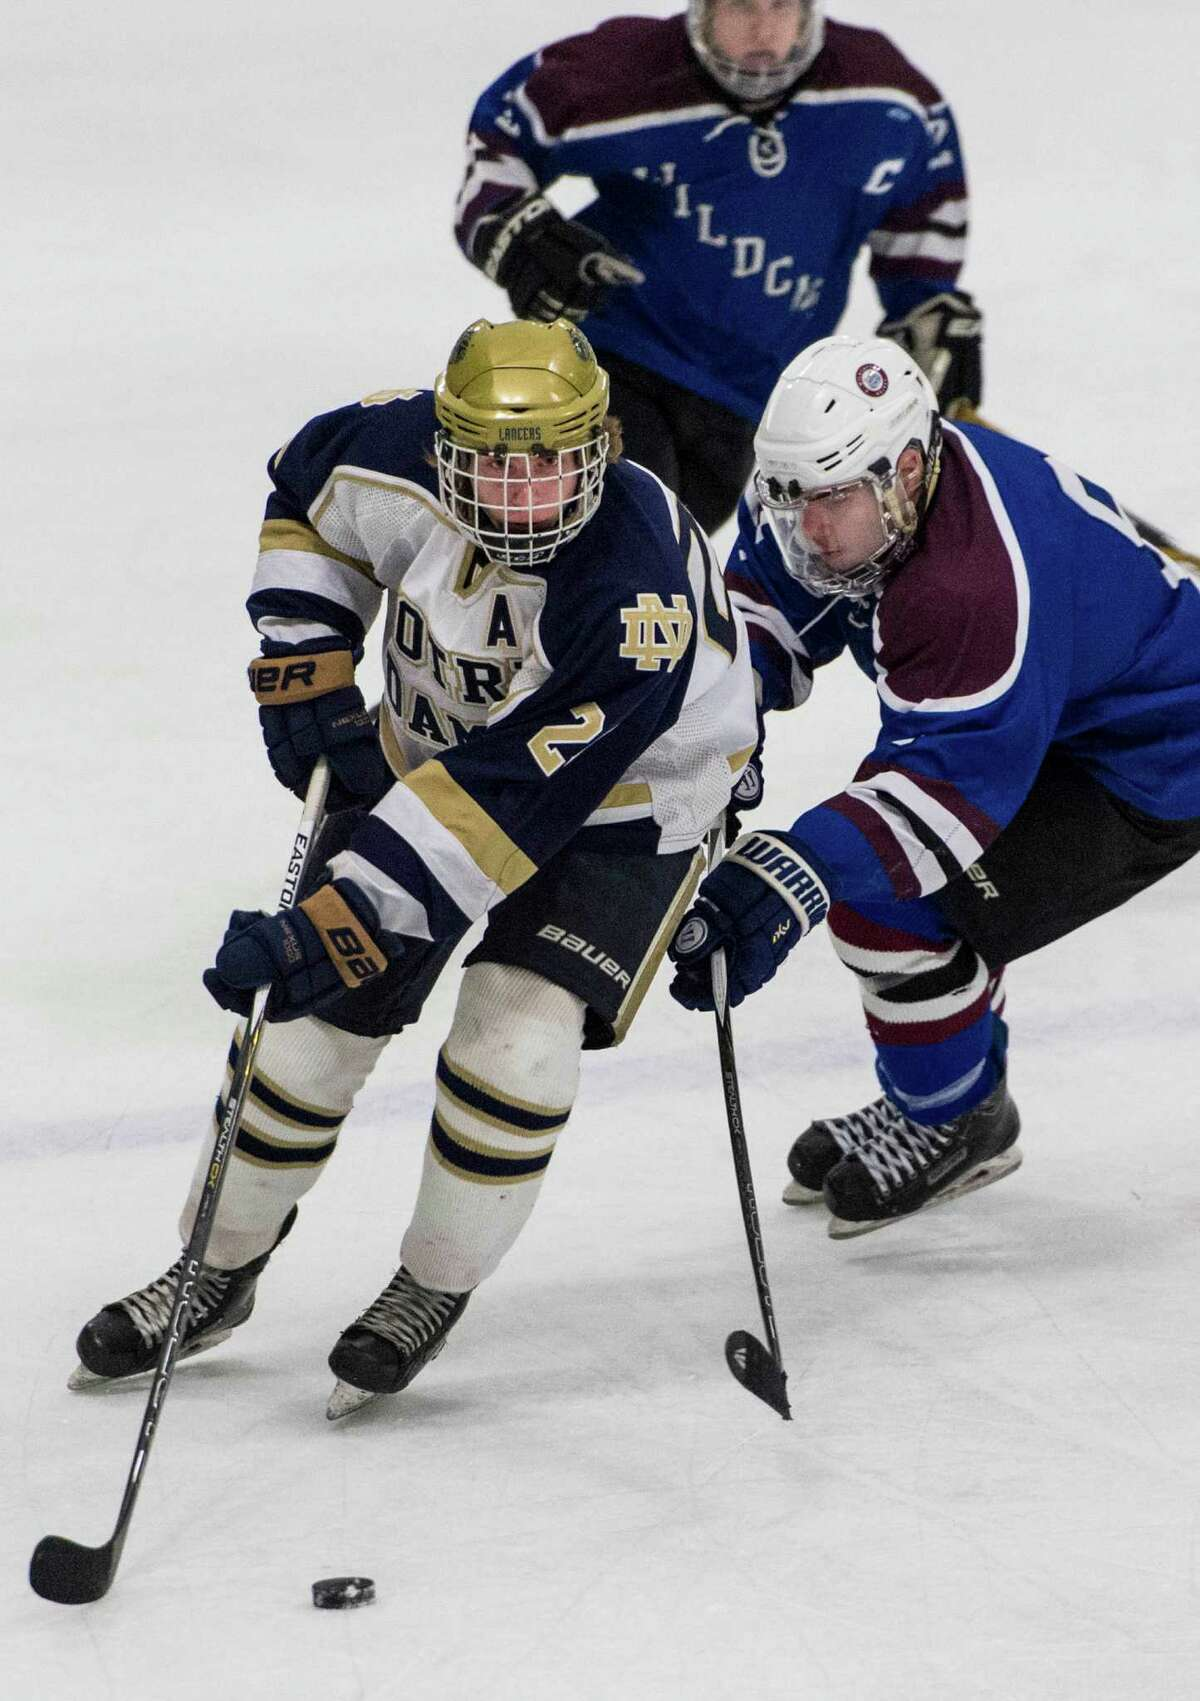 Notre Dame-Fairfield's Tyler Henchcliffe moves the puck into his teams offensive zone during a first round game of the CIAC division 1 boys ice hockey tournament against SGWL played at Milford Ice Pavillion, Milford, CT on Wednesday, March 9, 2016.